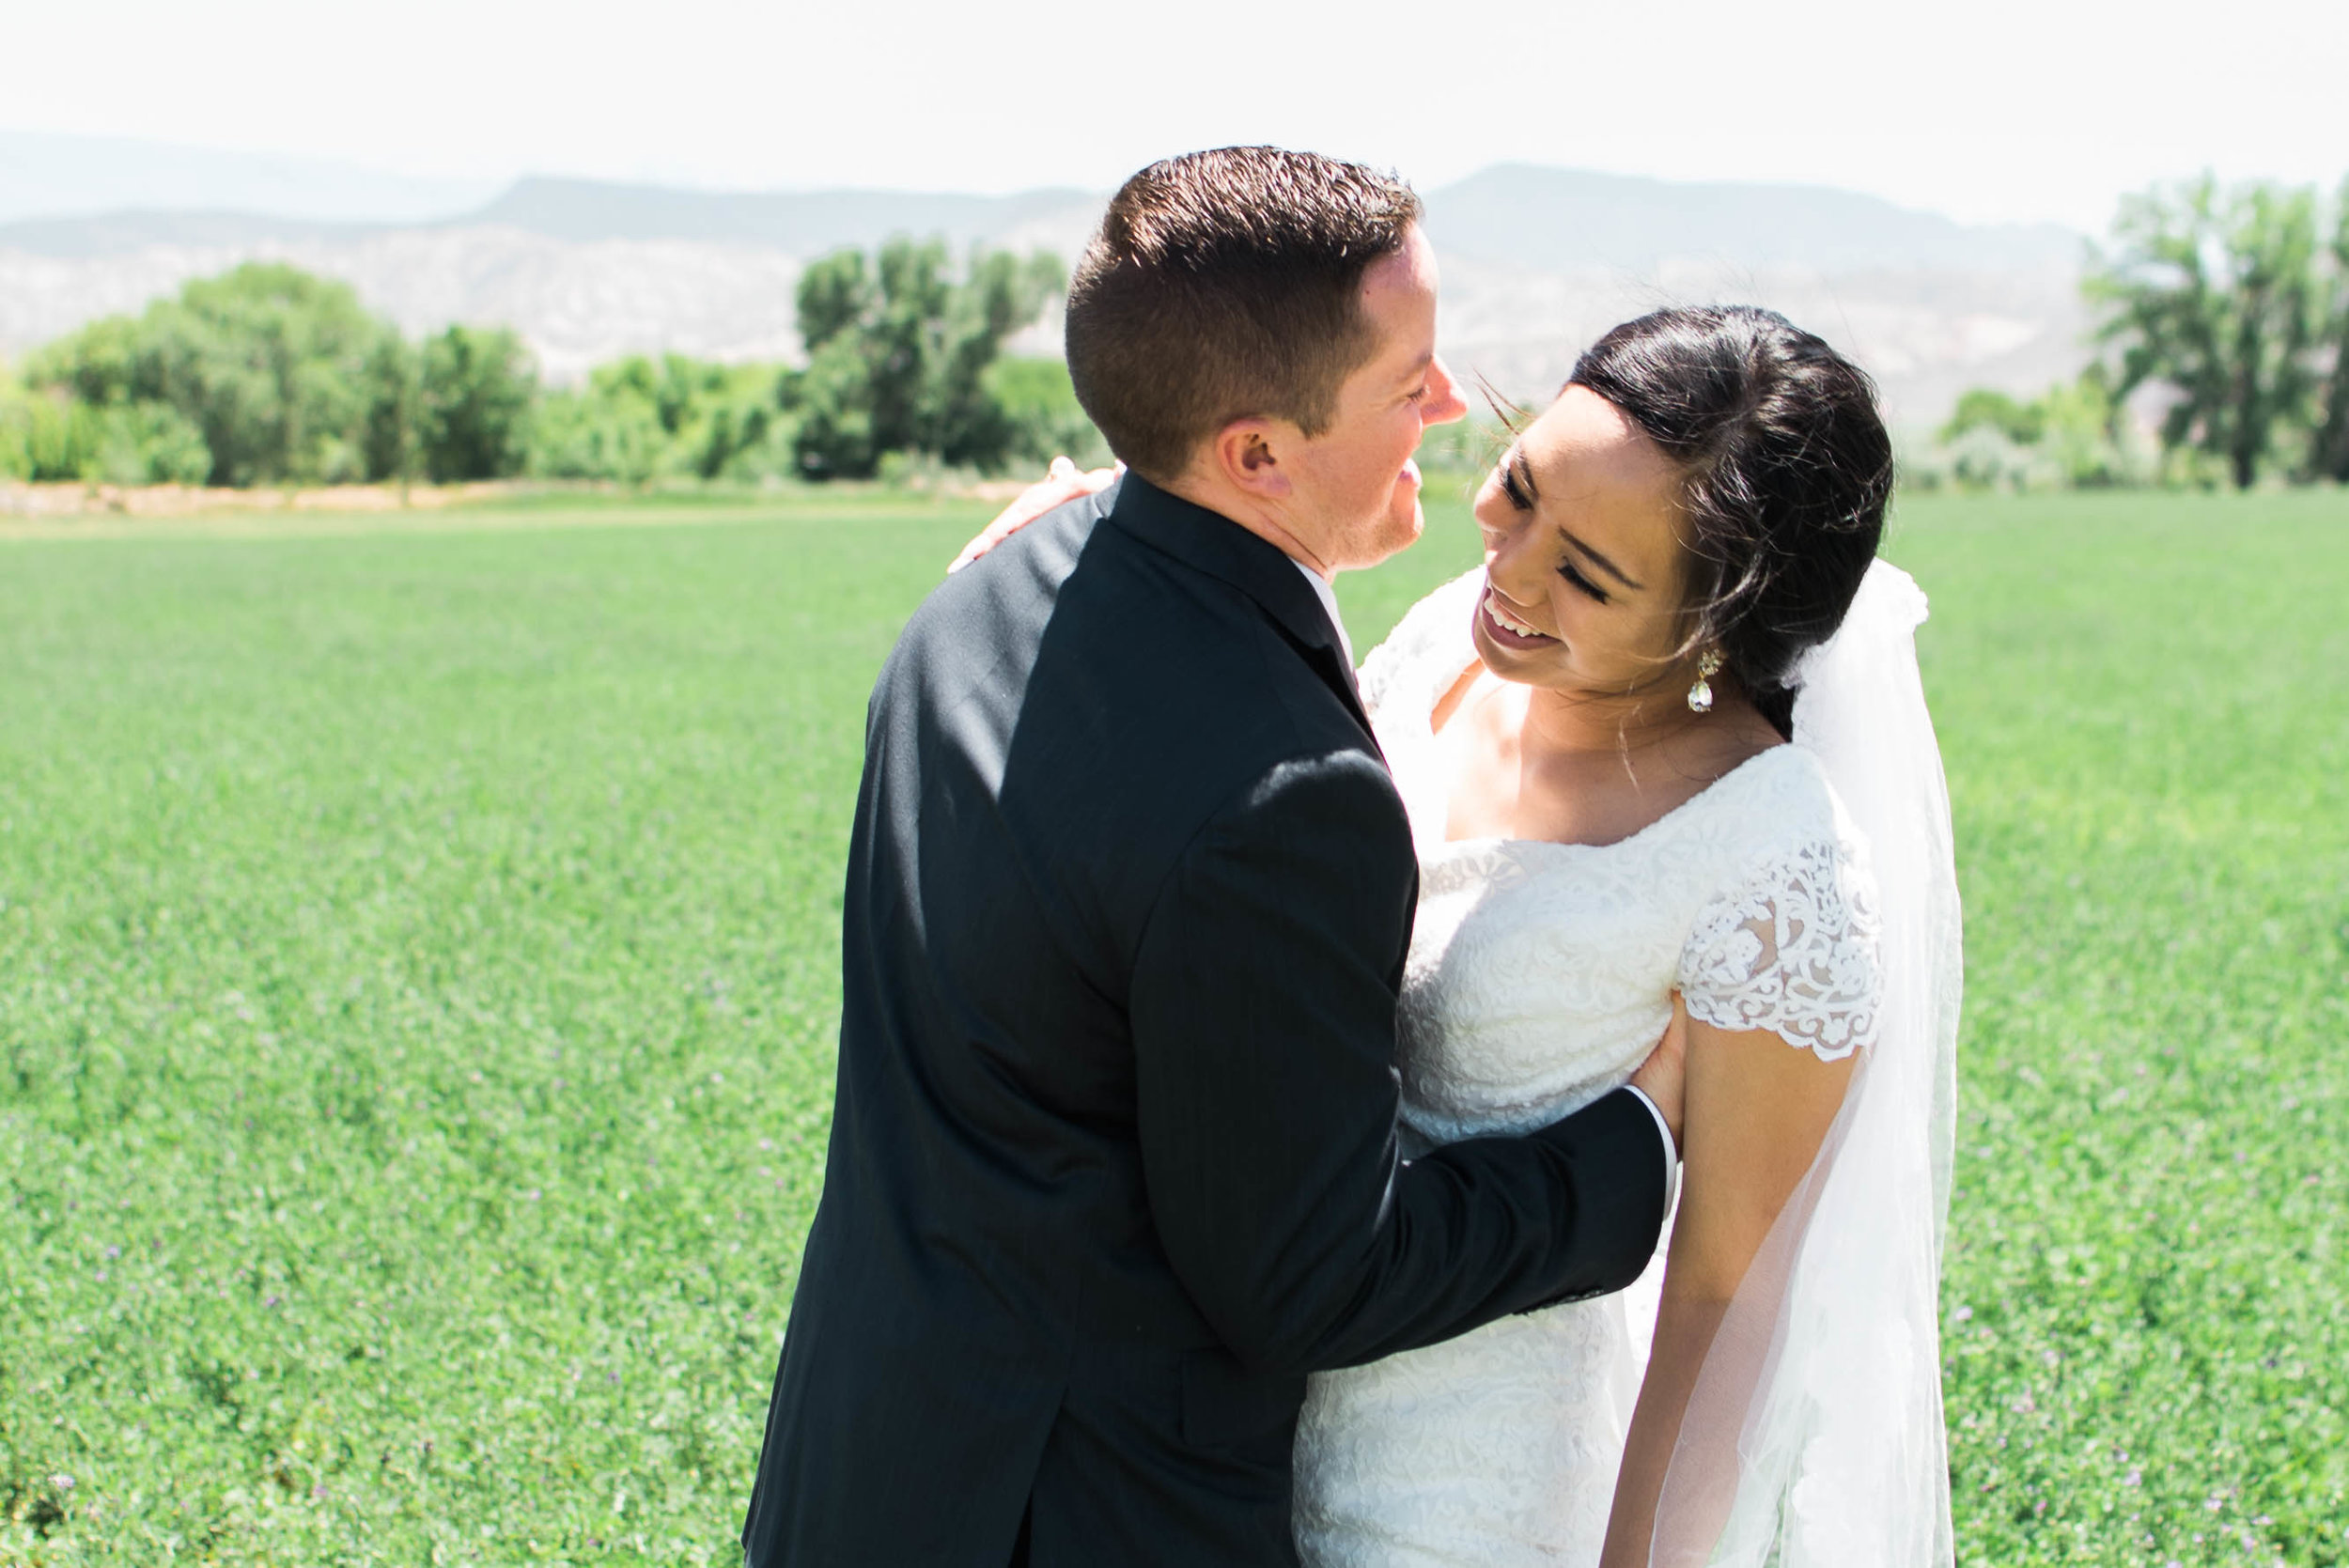 M+J-WEDDING-DAY-Sadie_Banks_Photography-412.jpg